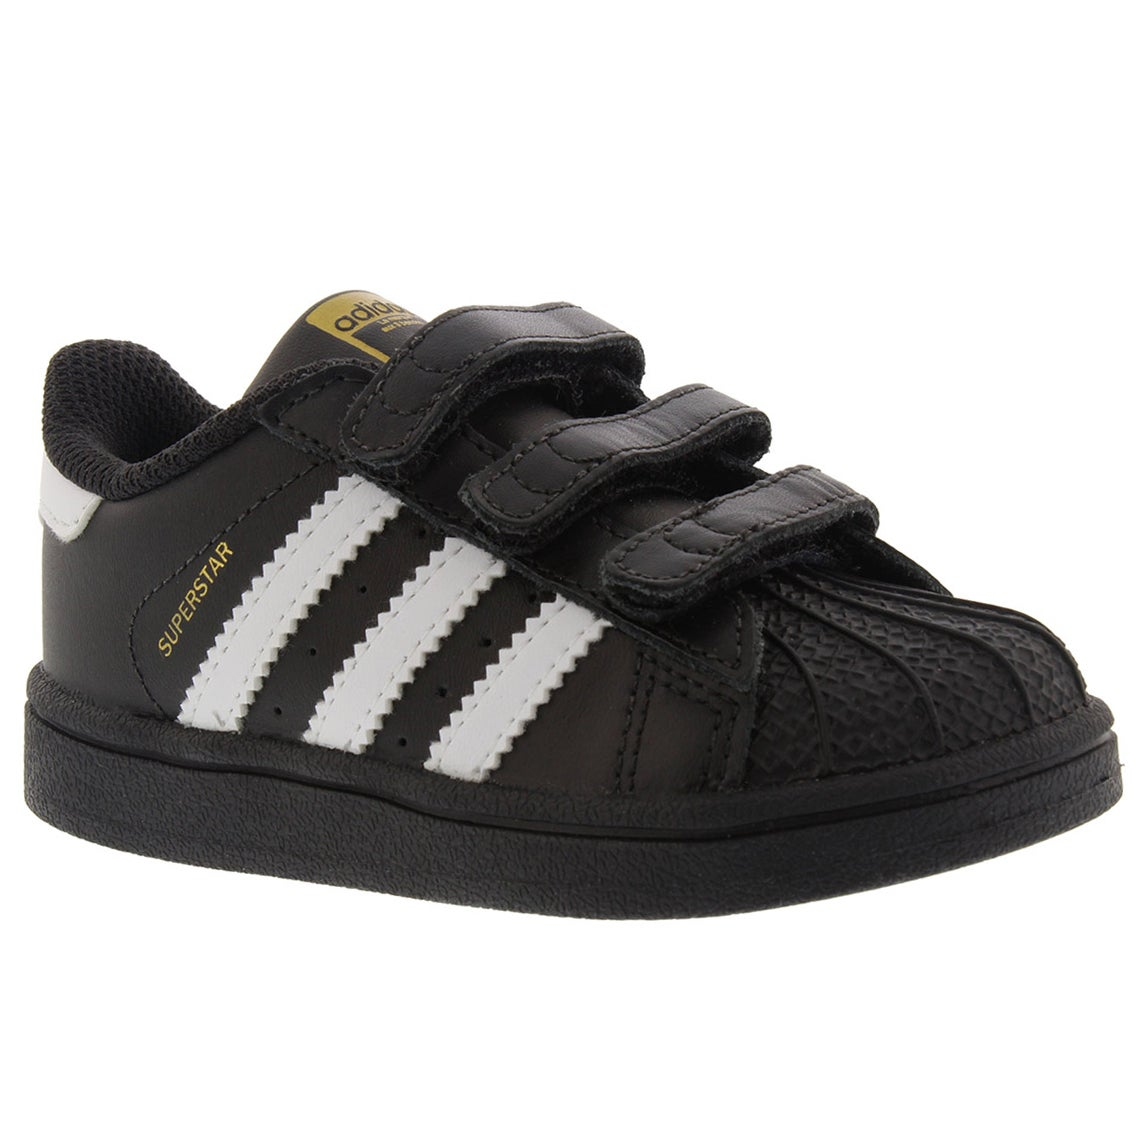 Infants' SUPERSTAR CF black/white sneakers